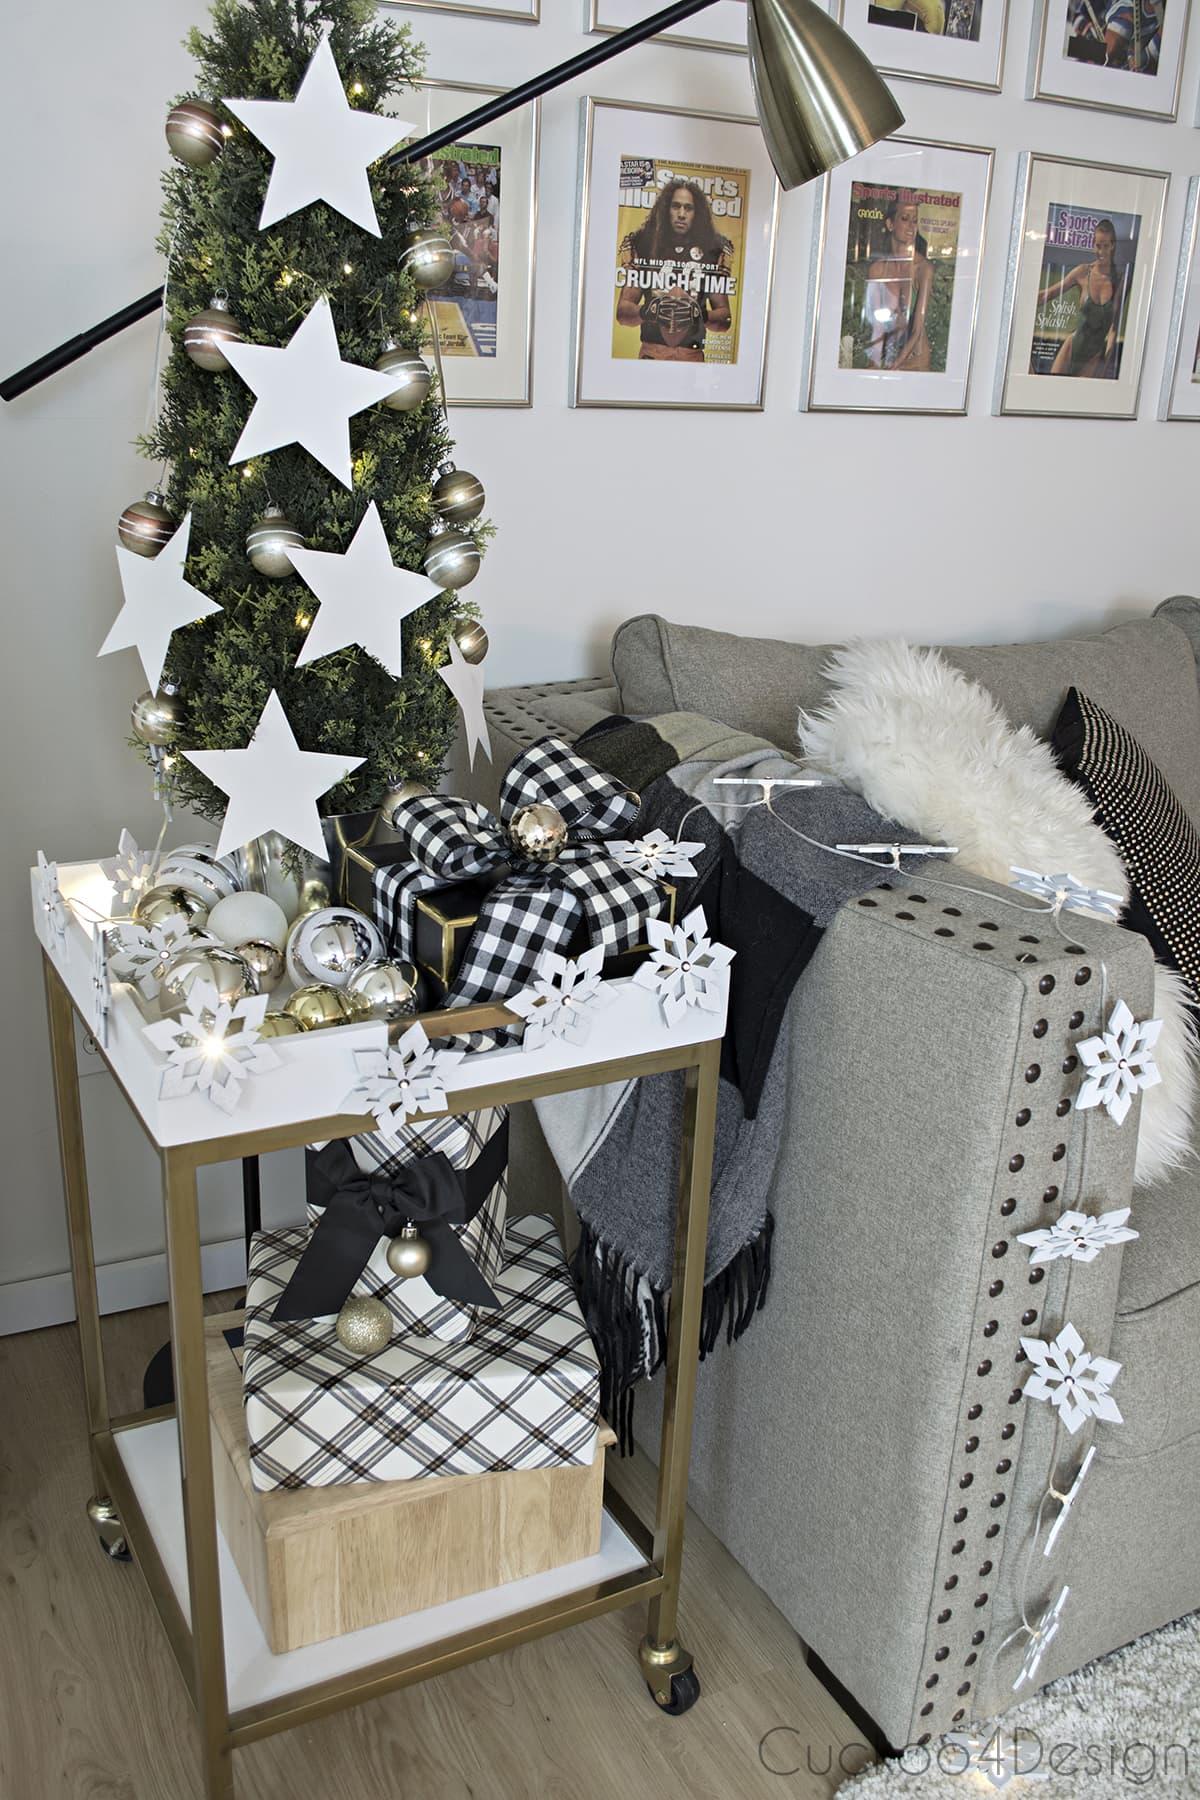 Home Decorators Collection® holiday homes blog hop - mancave/basement family room